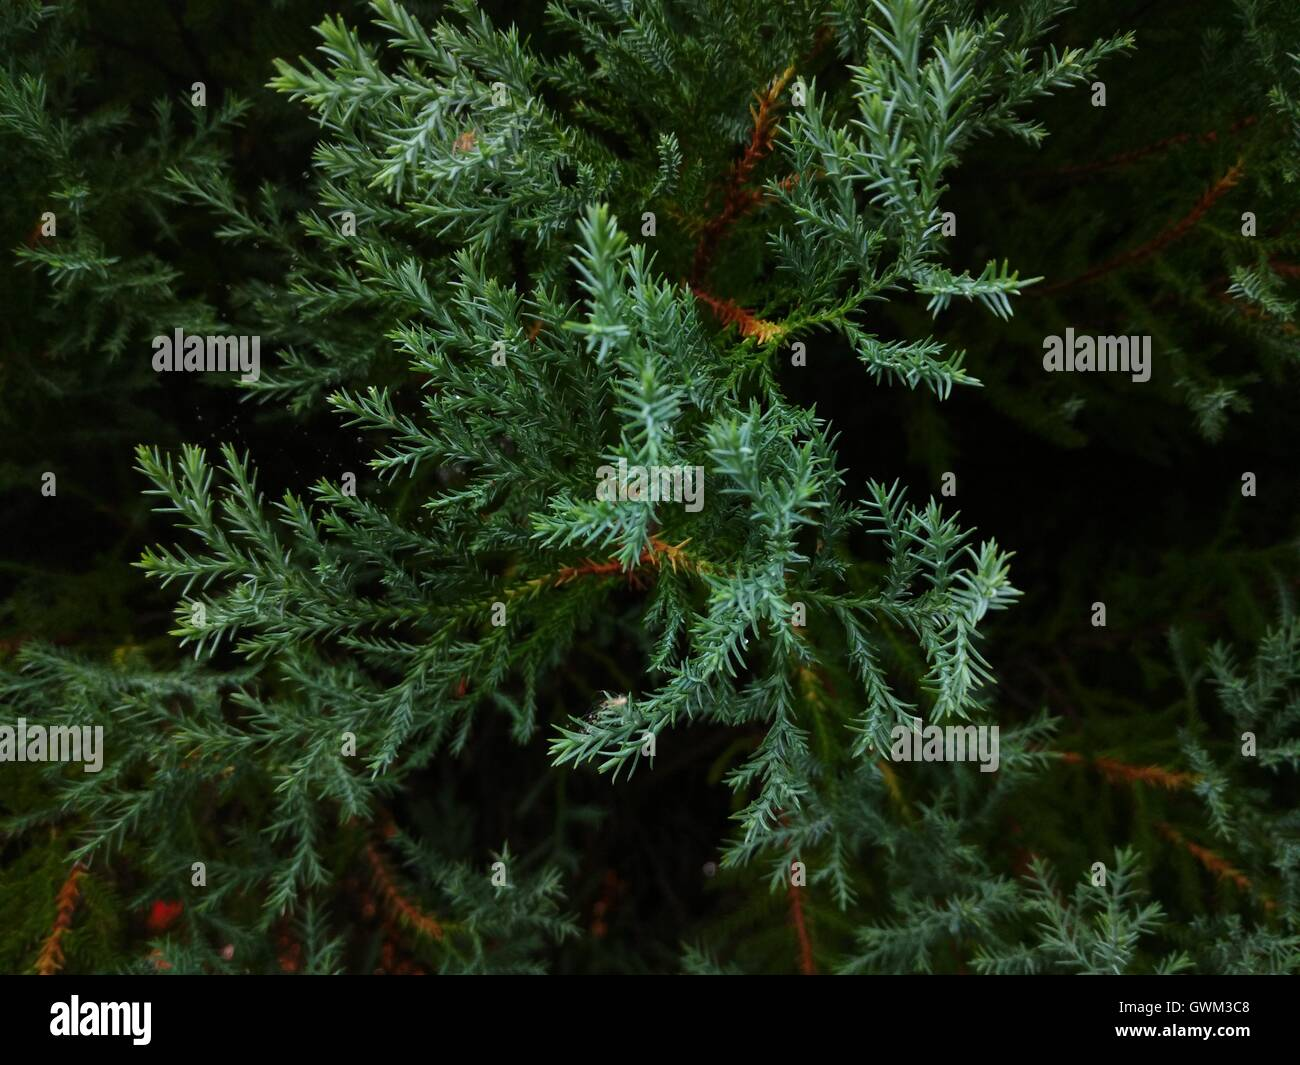 Lawson's Cypress or Chamaecyparis lawsonian - Stock Image